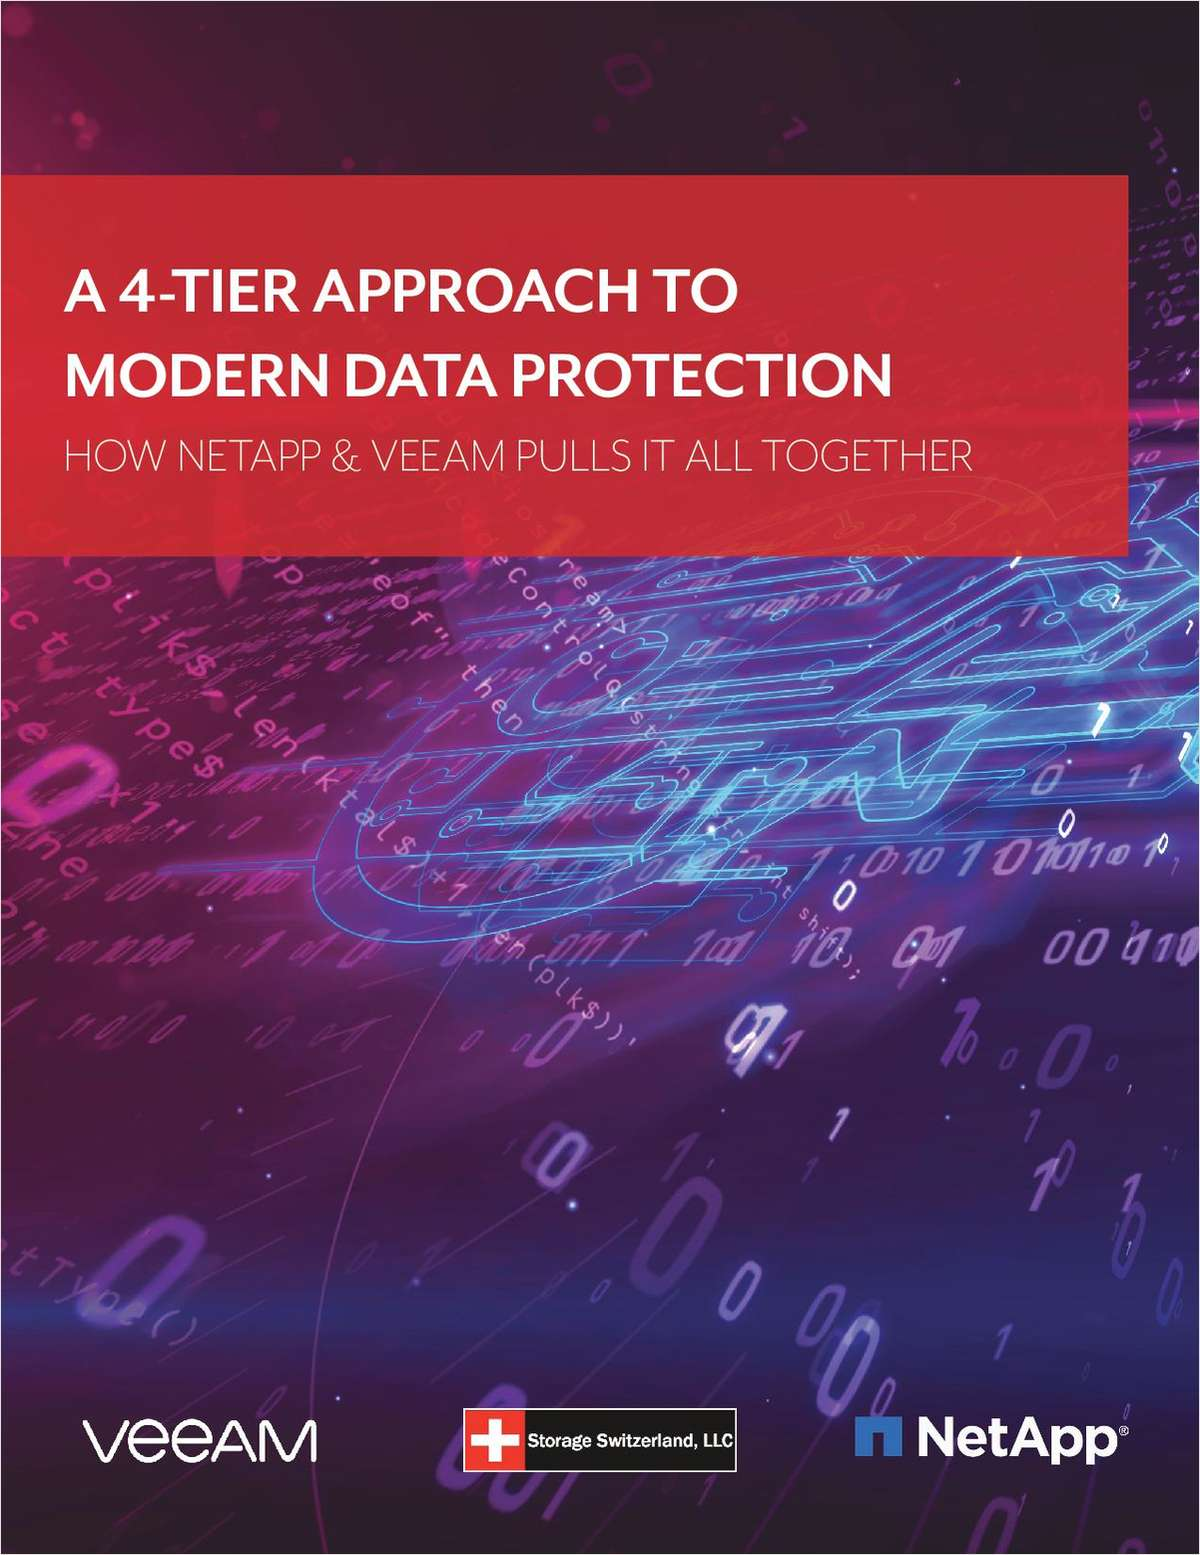 A 4-TIER APPROACH TO MODERN DATA PROTECTION